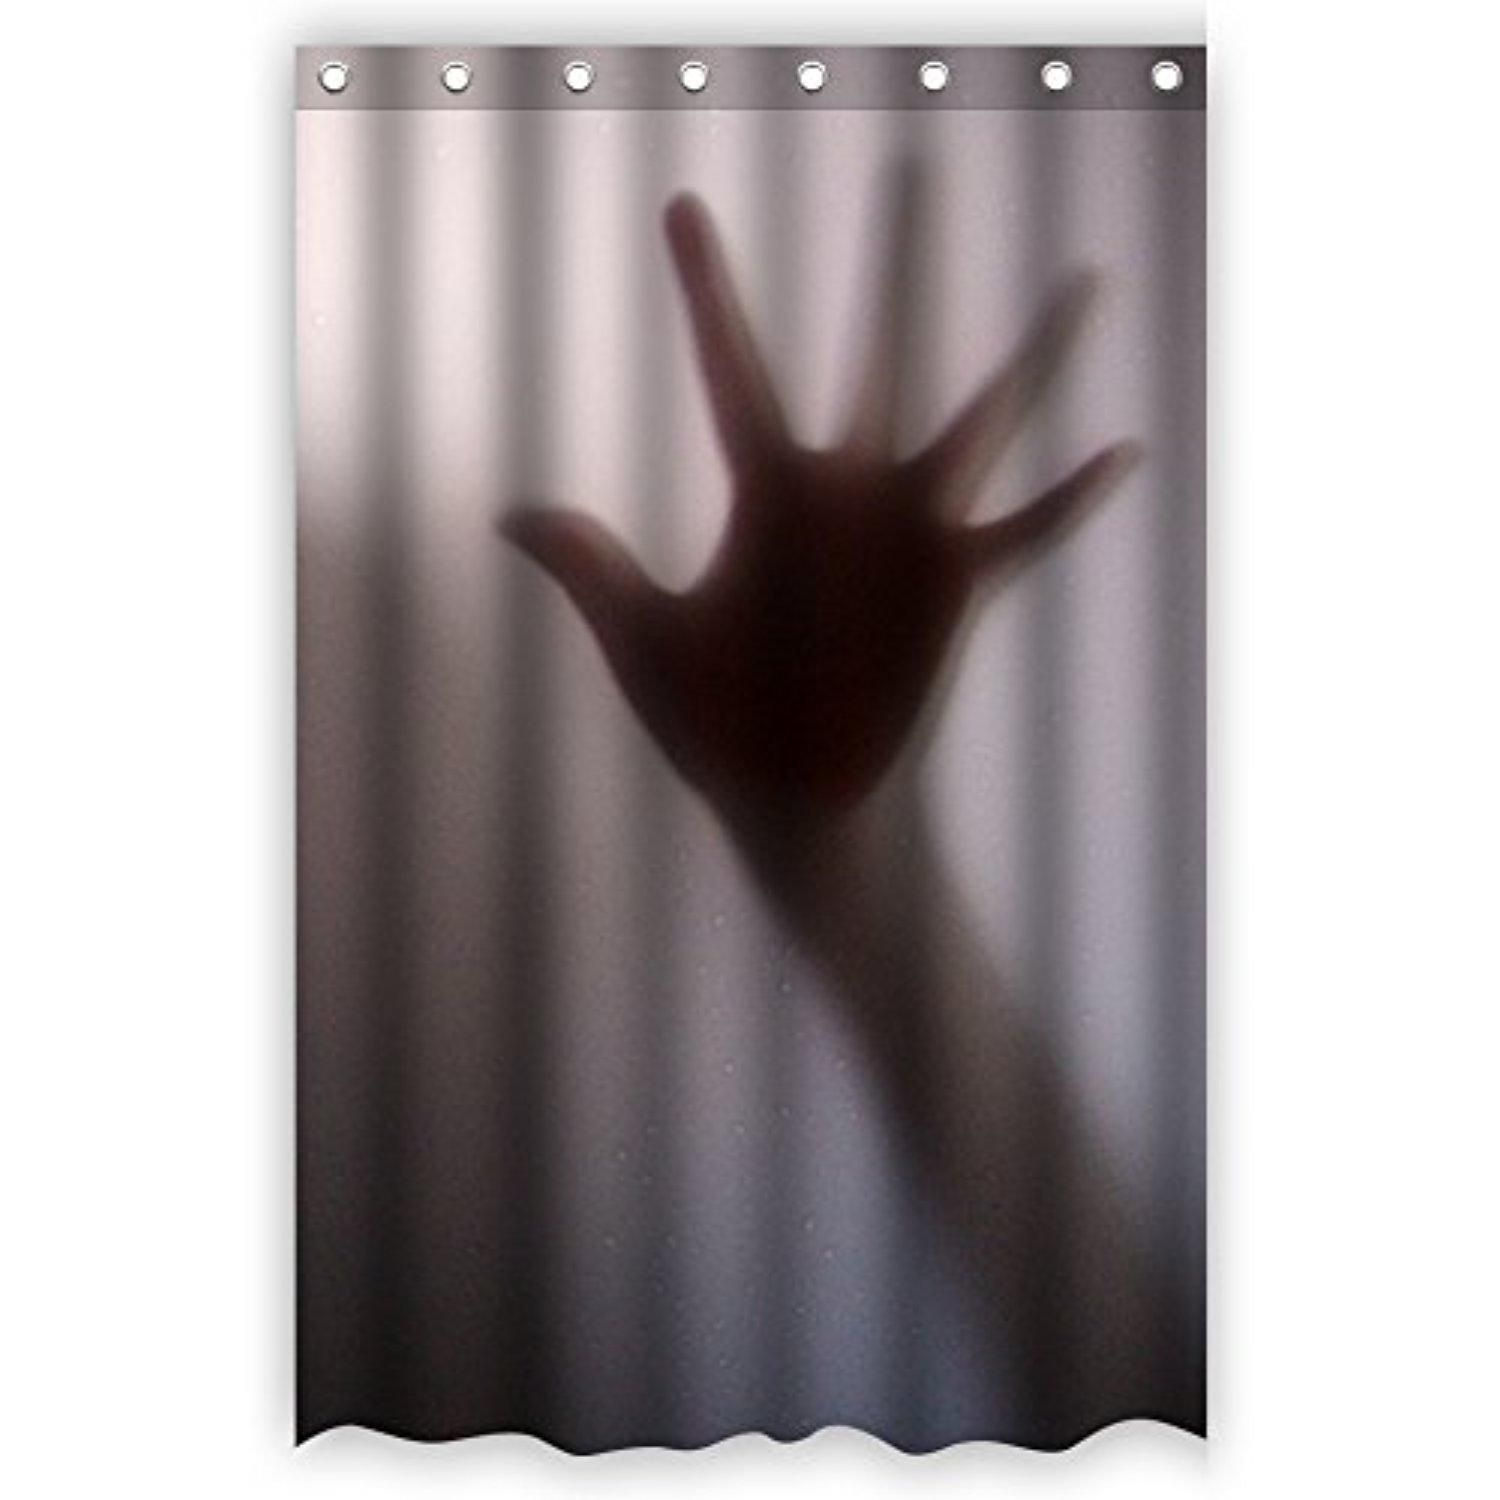 Bart Help Me Shadow Of Hands Behind Frosted Glass Bathroom Shower Curtain 48 Inch By 72 Inch Unique And Curtain Designs Glass Bathroom Bathroom Shower Curtains